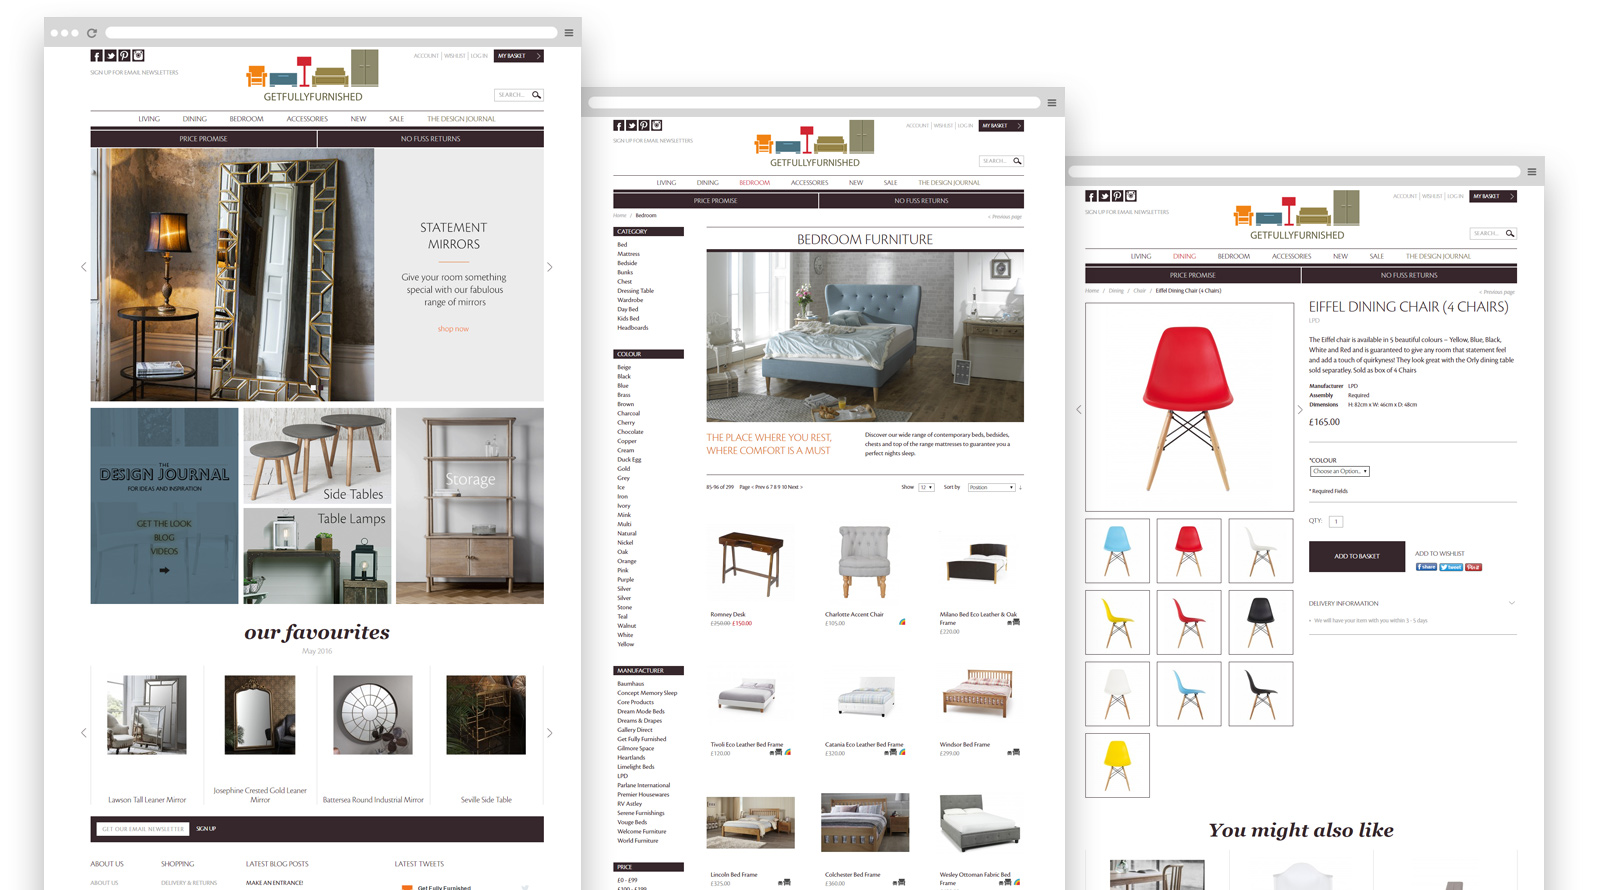 Get Fully Furnished website pages